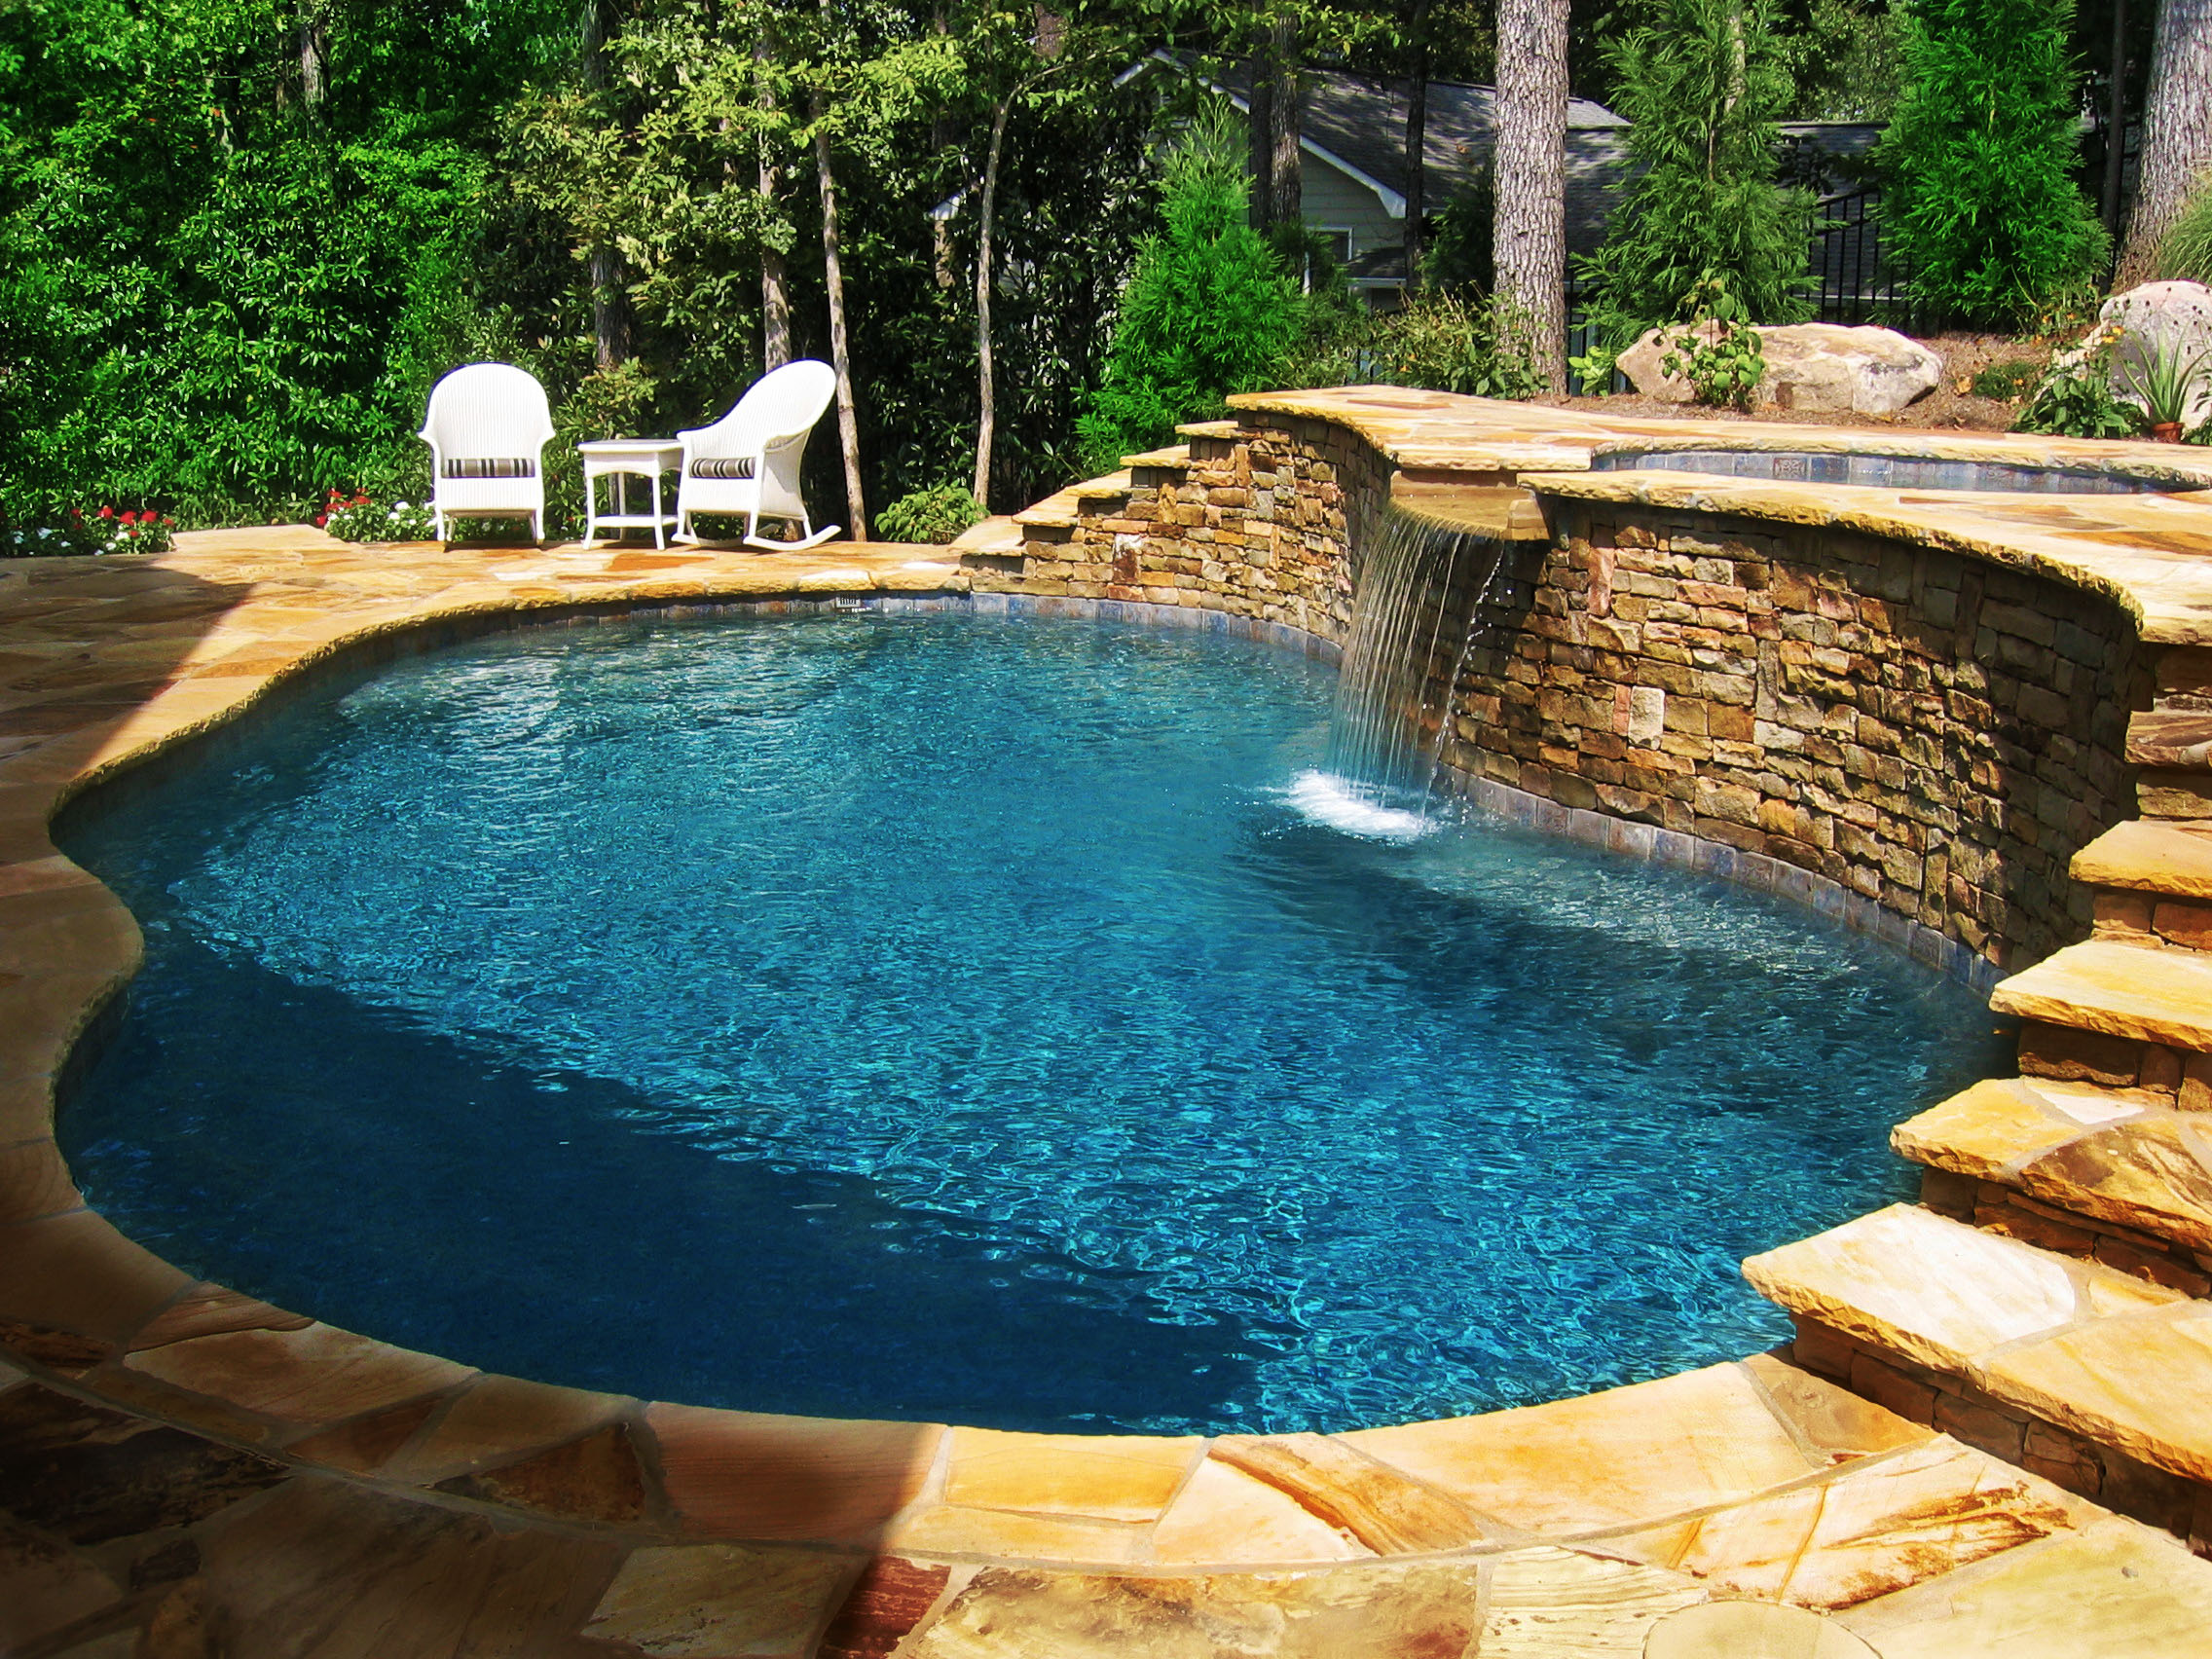 Pool remodeling company pool resurfacing fence companies for Pool remodeling